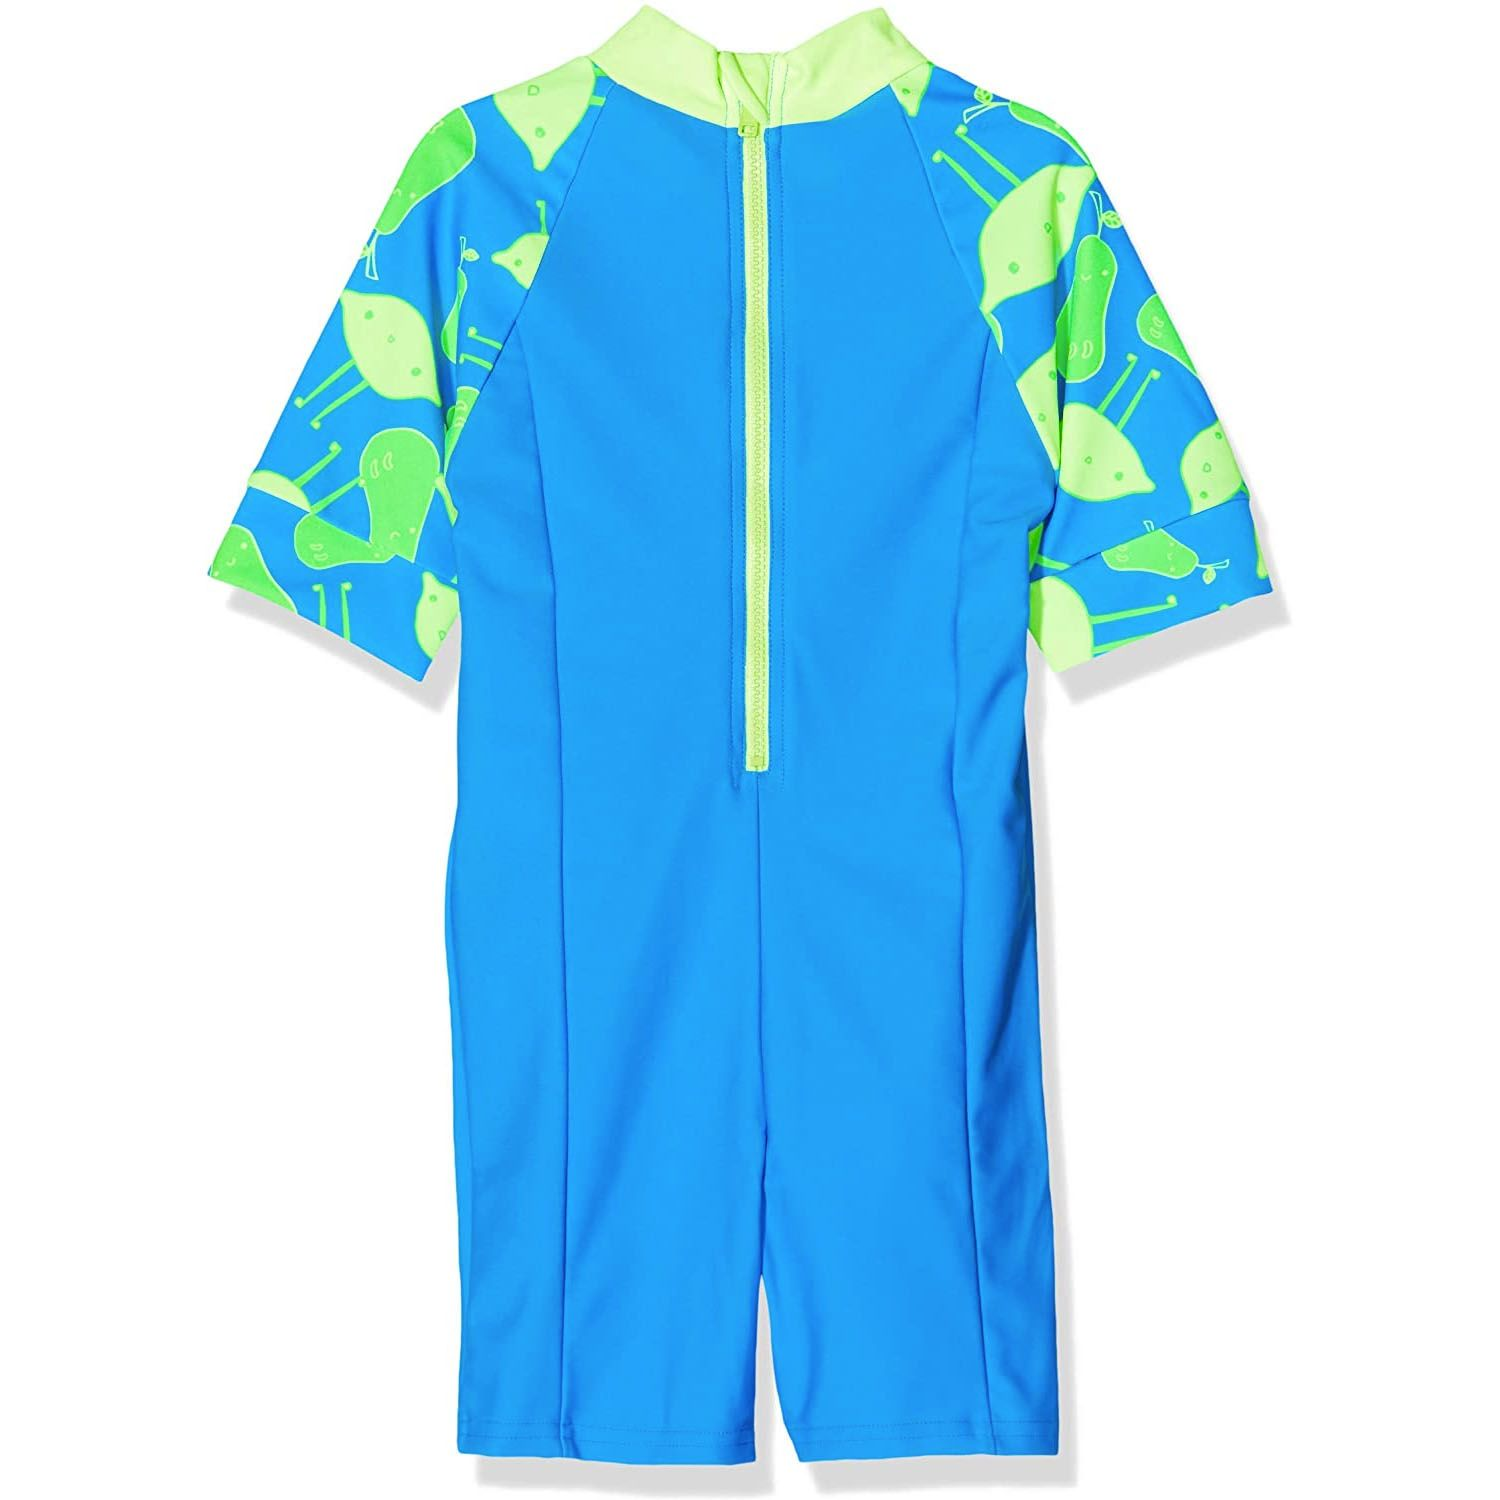 Speedo All In One Infant Swimsuit Blue/Green - 2 Years